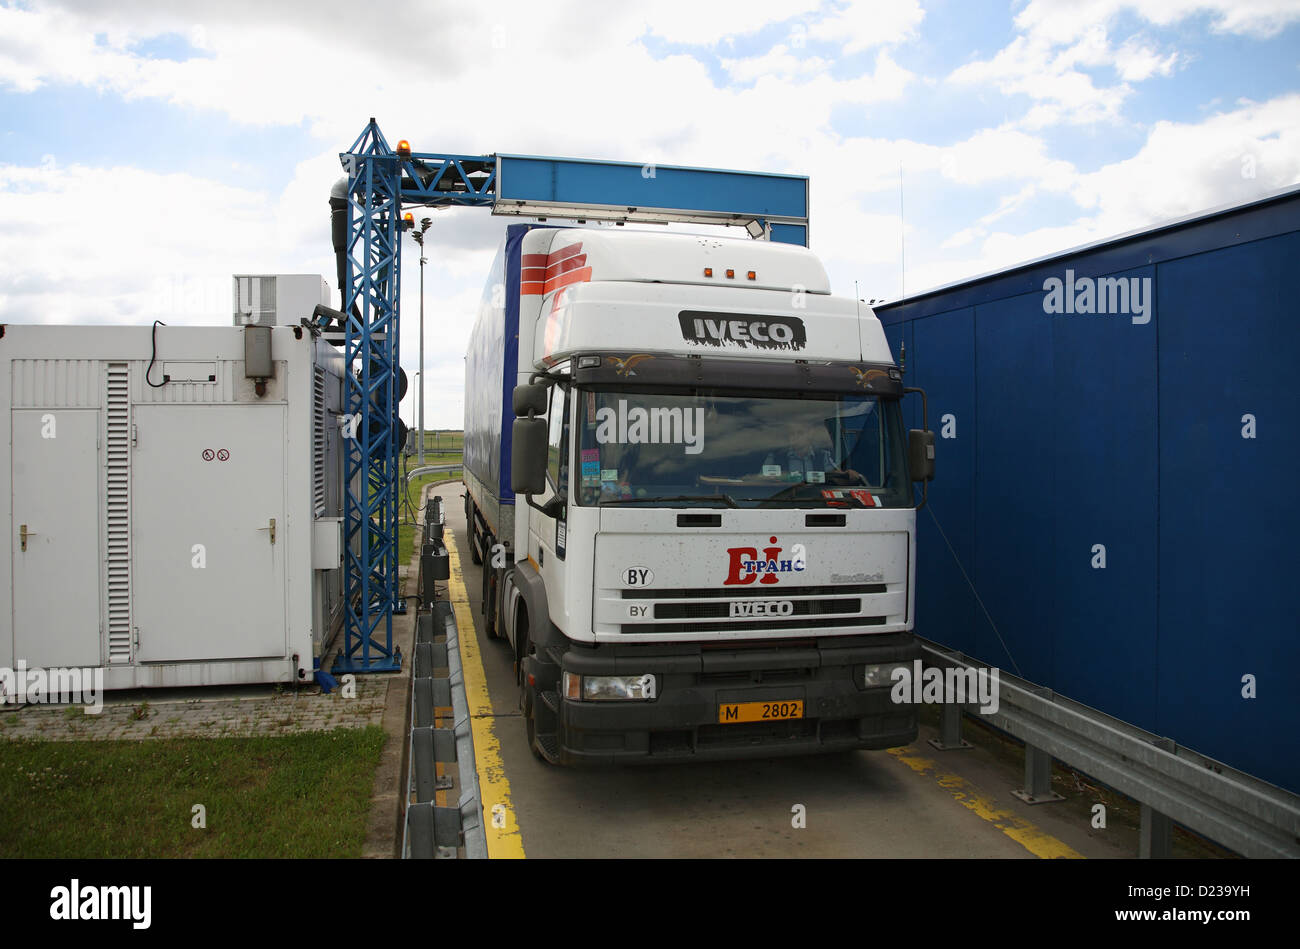 Koroszczyn, Poland, the charge of a truck is scanned - Stock Image